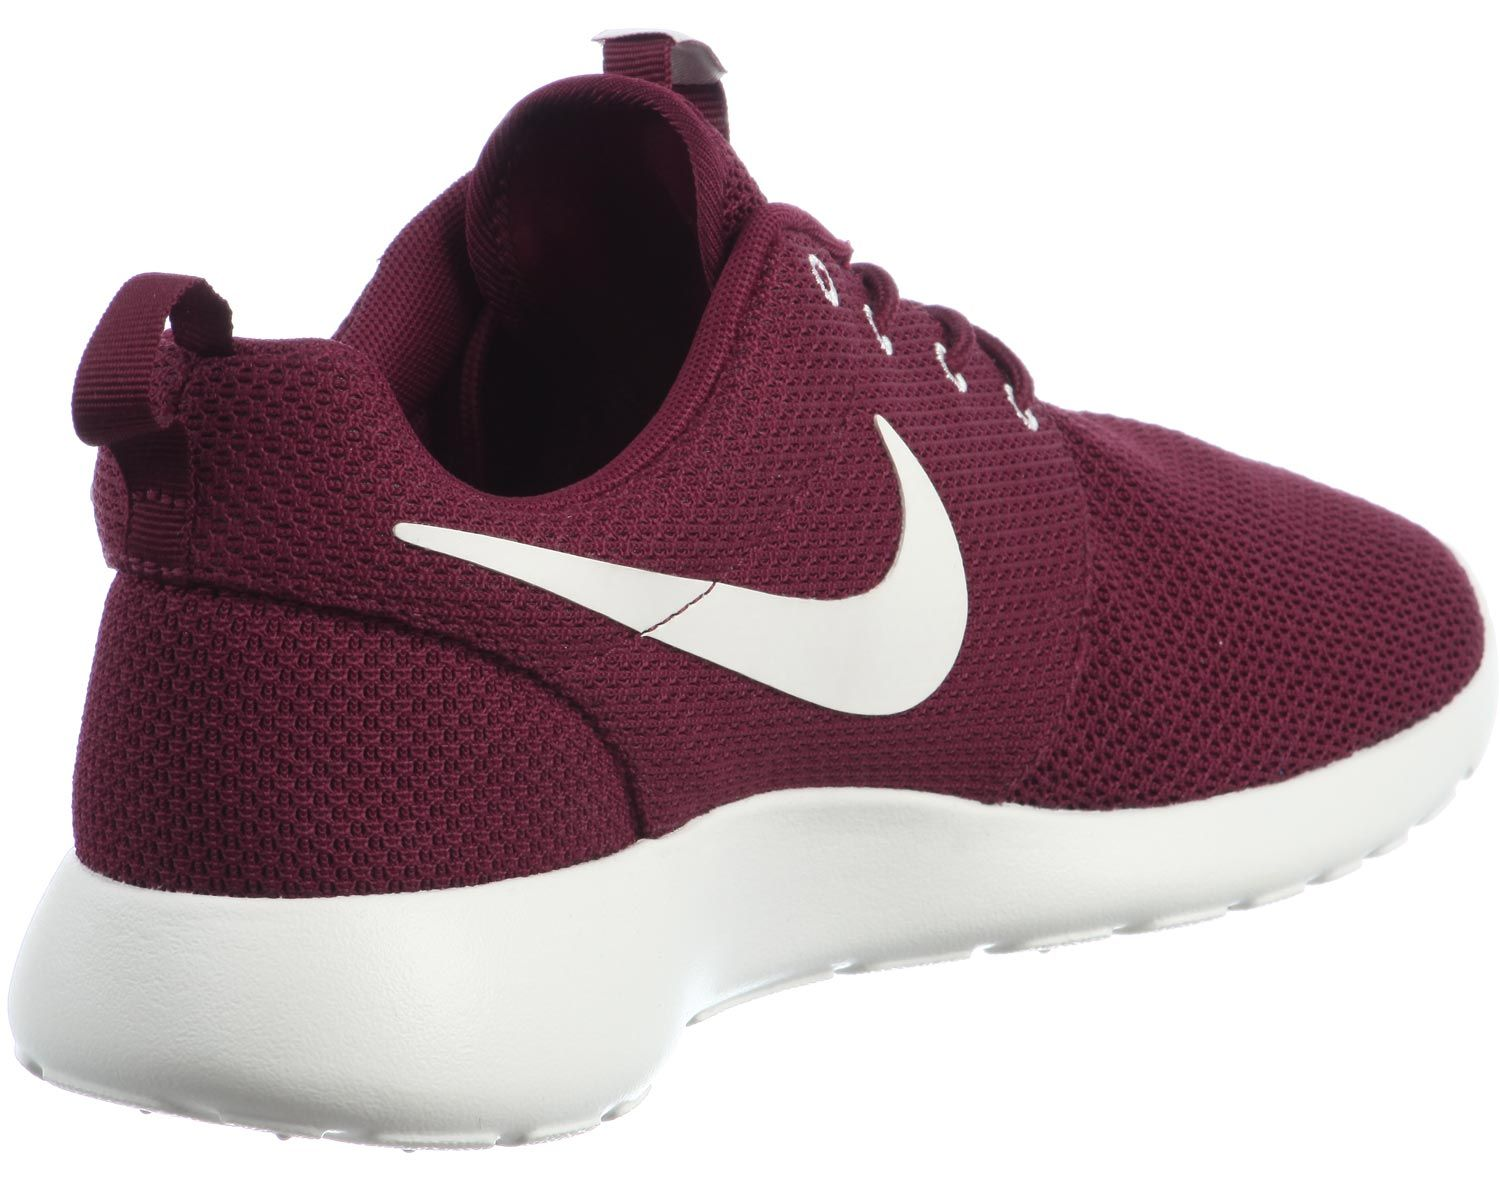 nike roshe run bordeaux homme | Men's Style: Art On My Feet